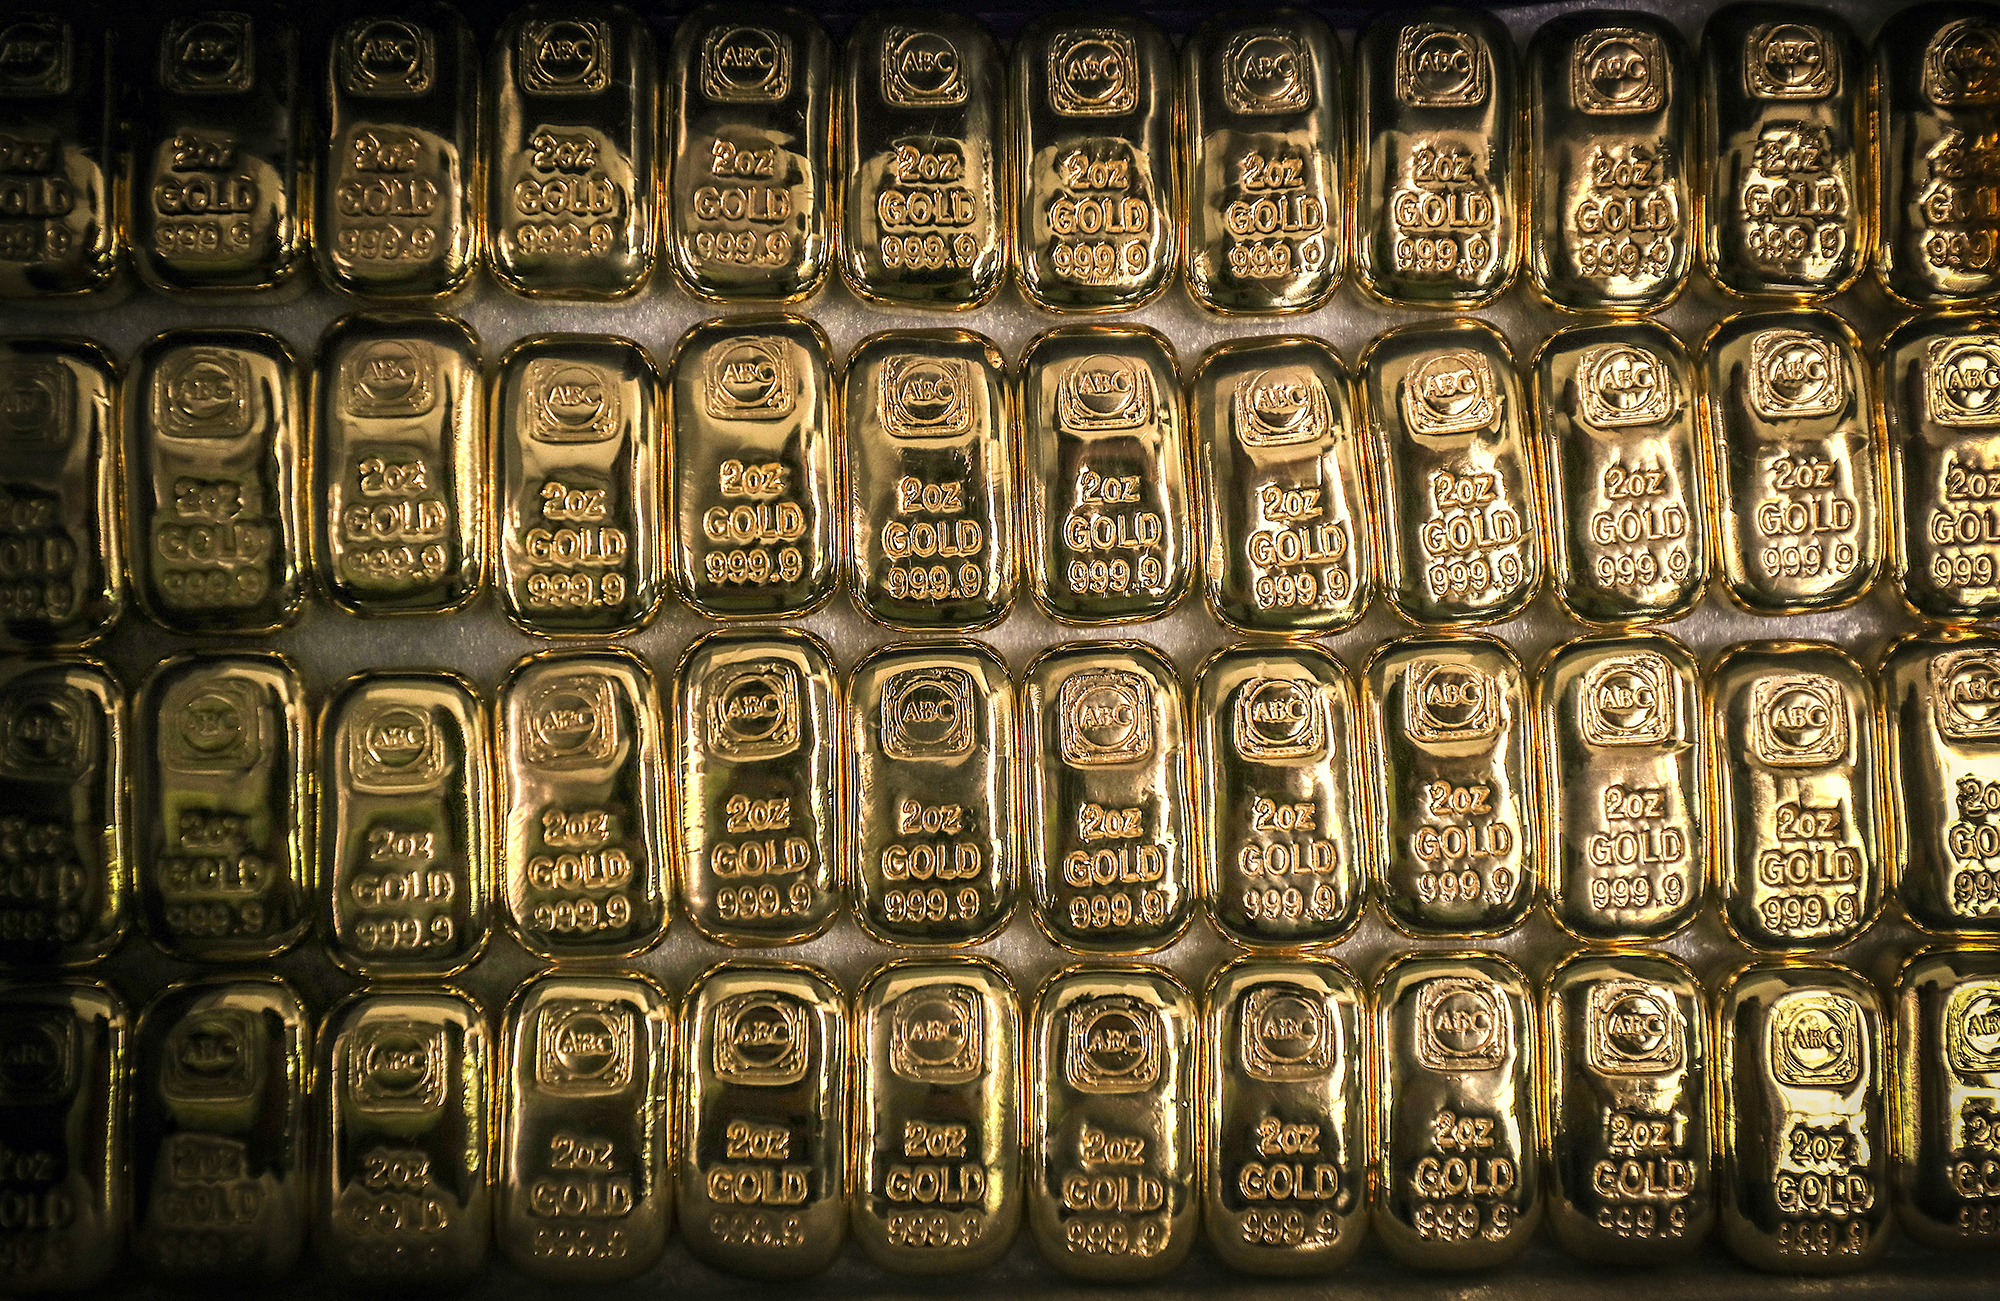 Gold tops $1,800 and hits highest level since 2011